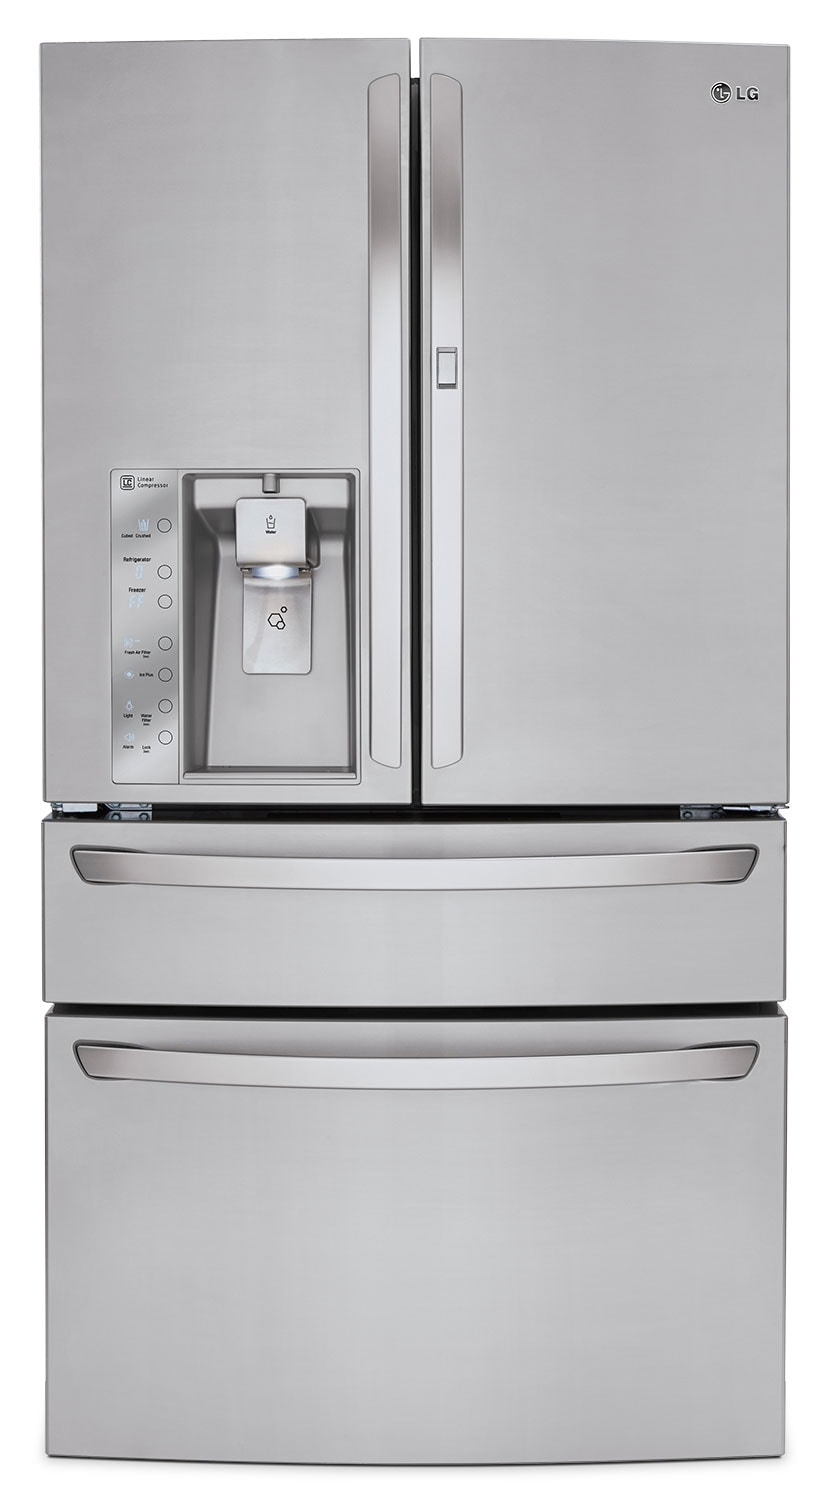 LG Appliances Stainless Steel French Door Refrigerator (29.7 Cu. Ft.) - LMXS30776S